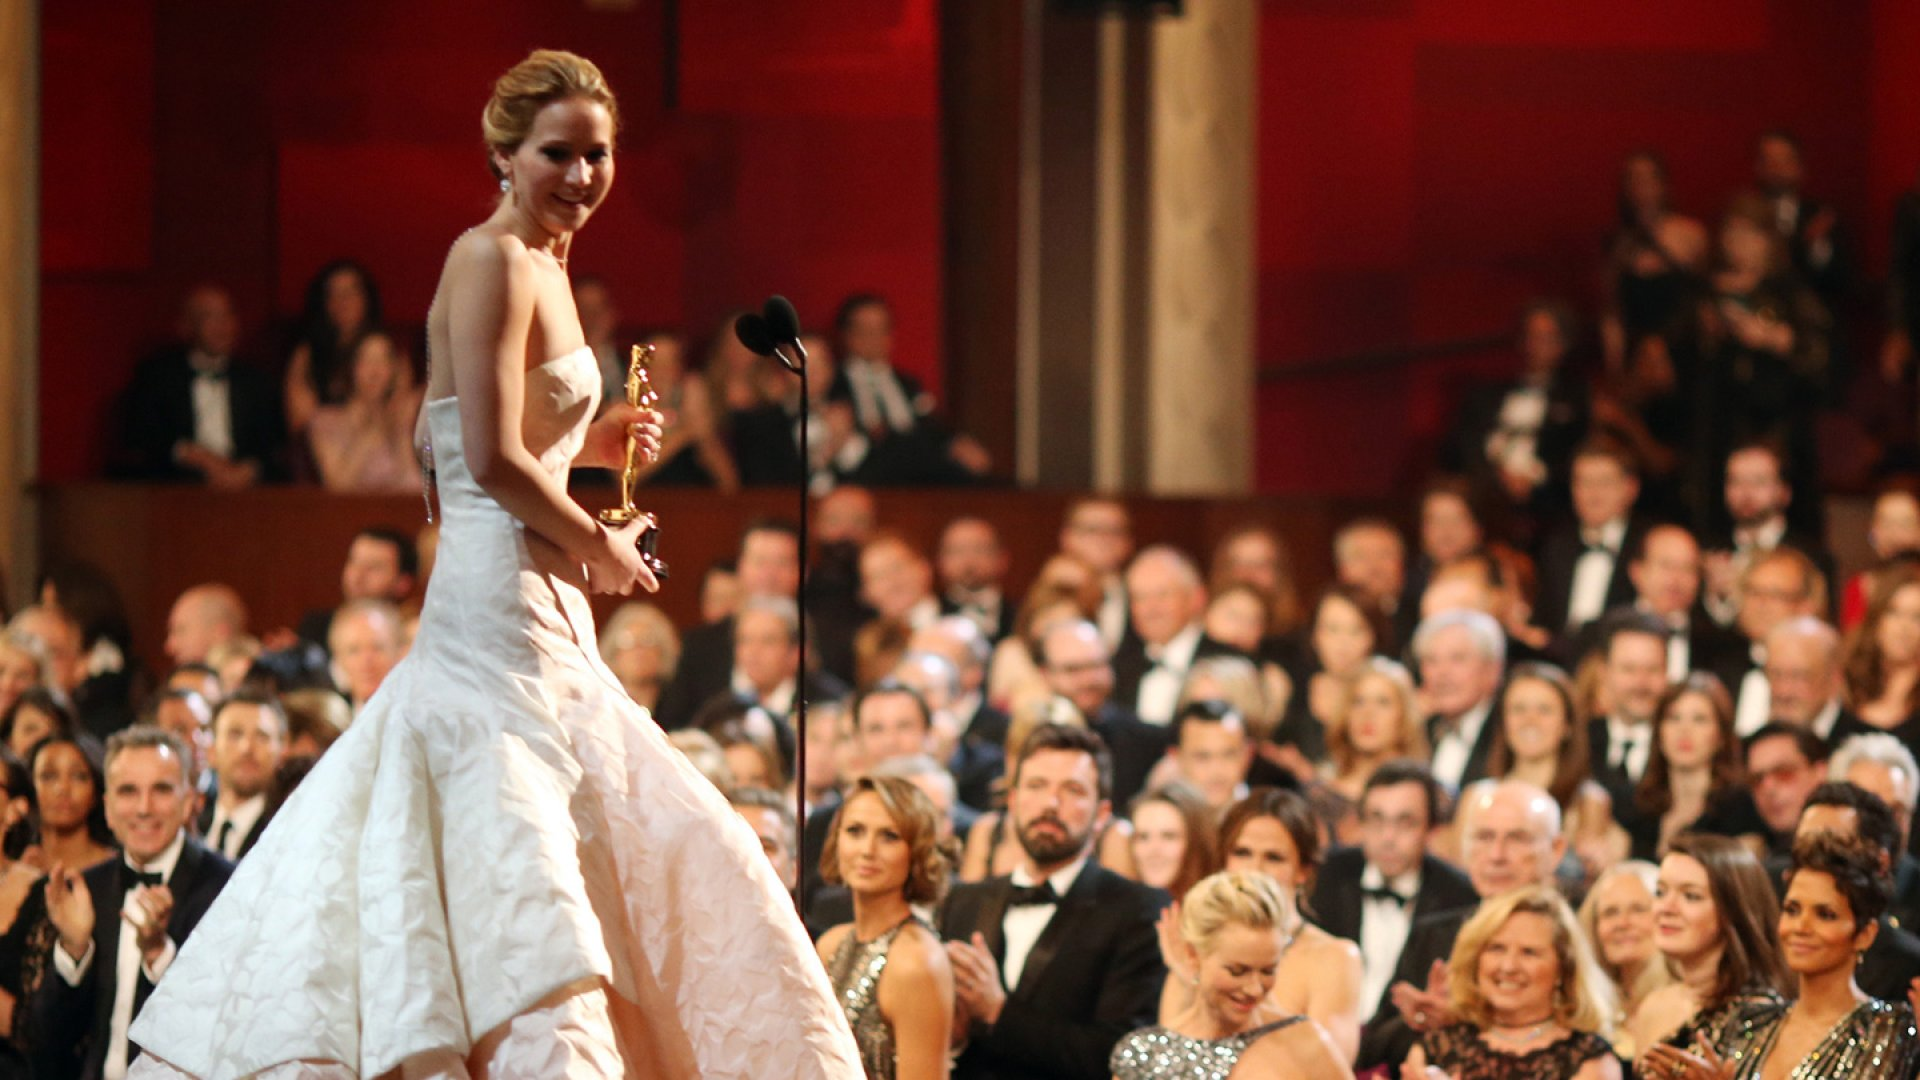 Jennifer Lawrence onstage after winning the award for Actress in a Leading Role during the Oscars on February 24, 2013 in Hollywood, California.